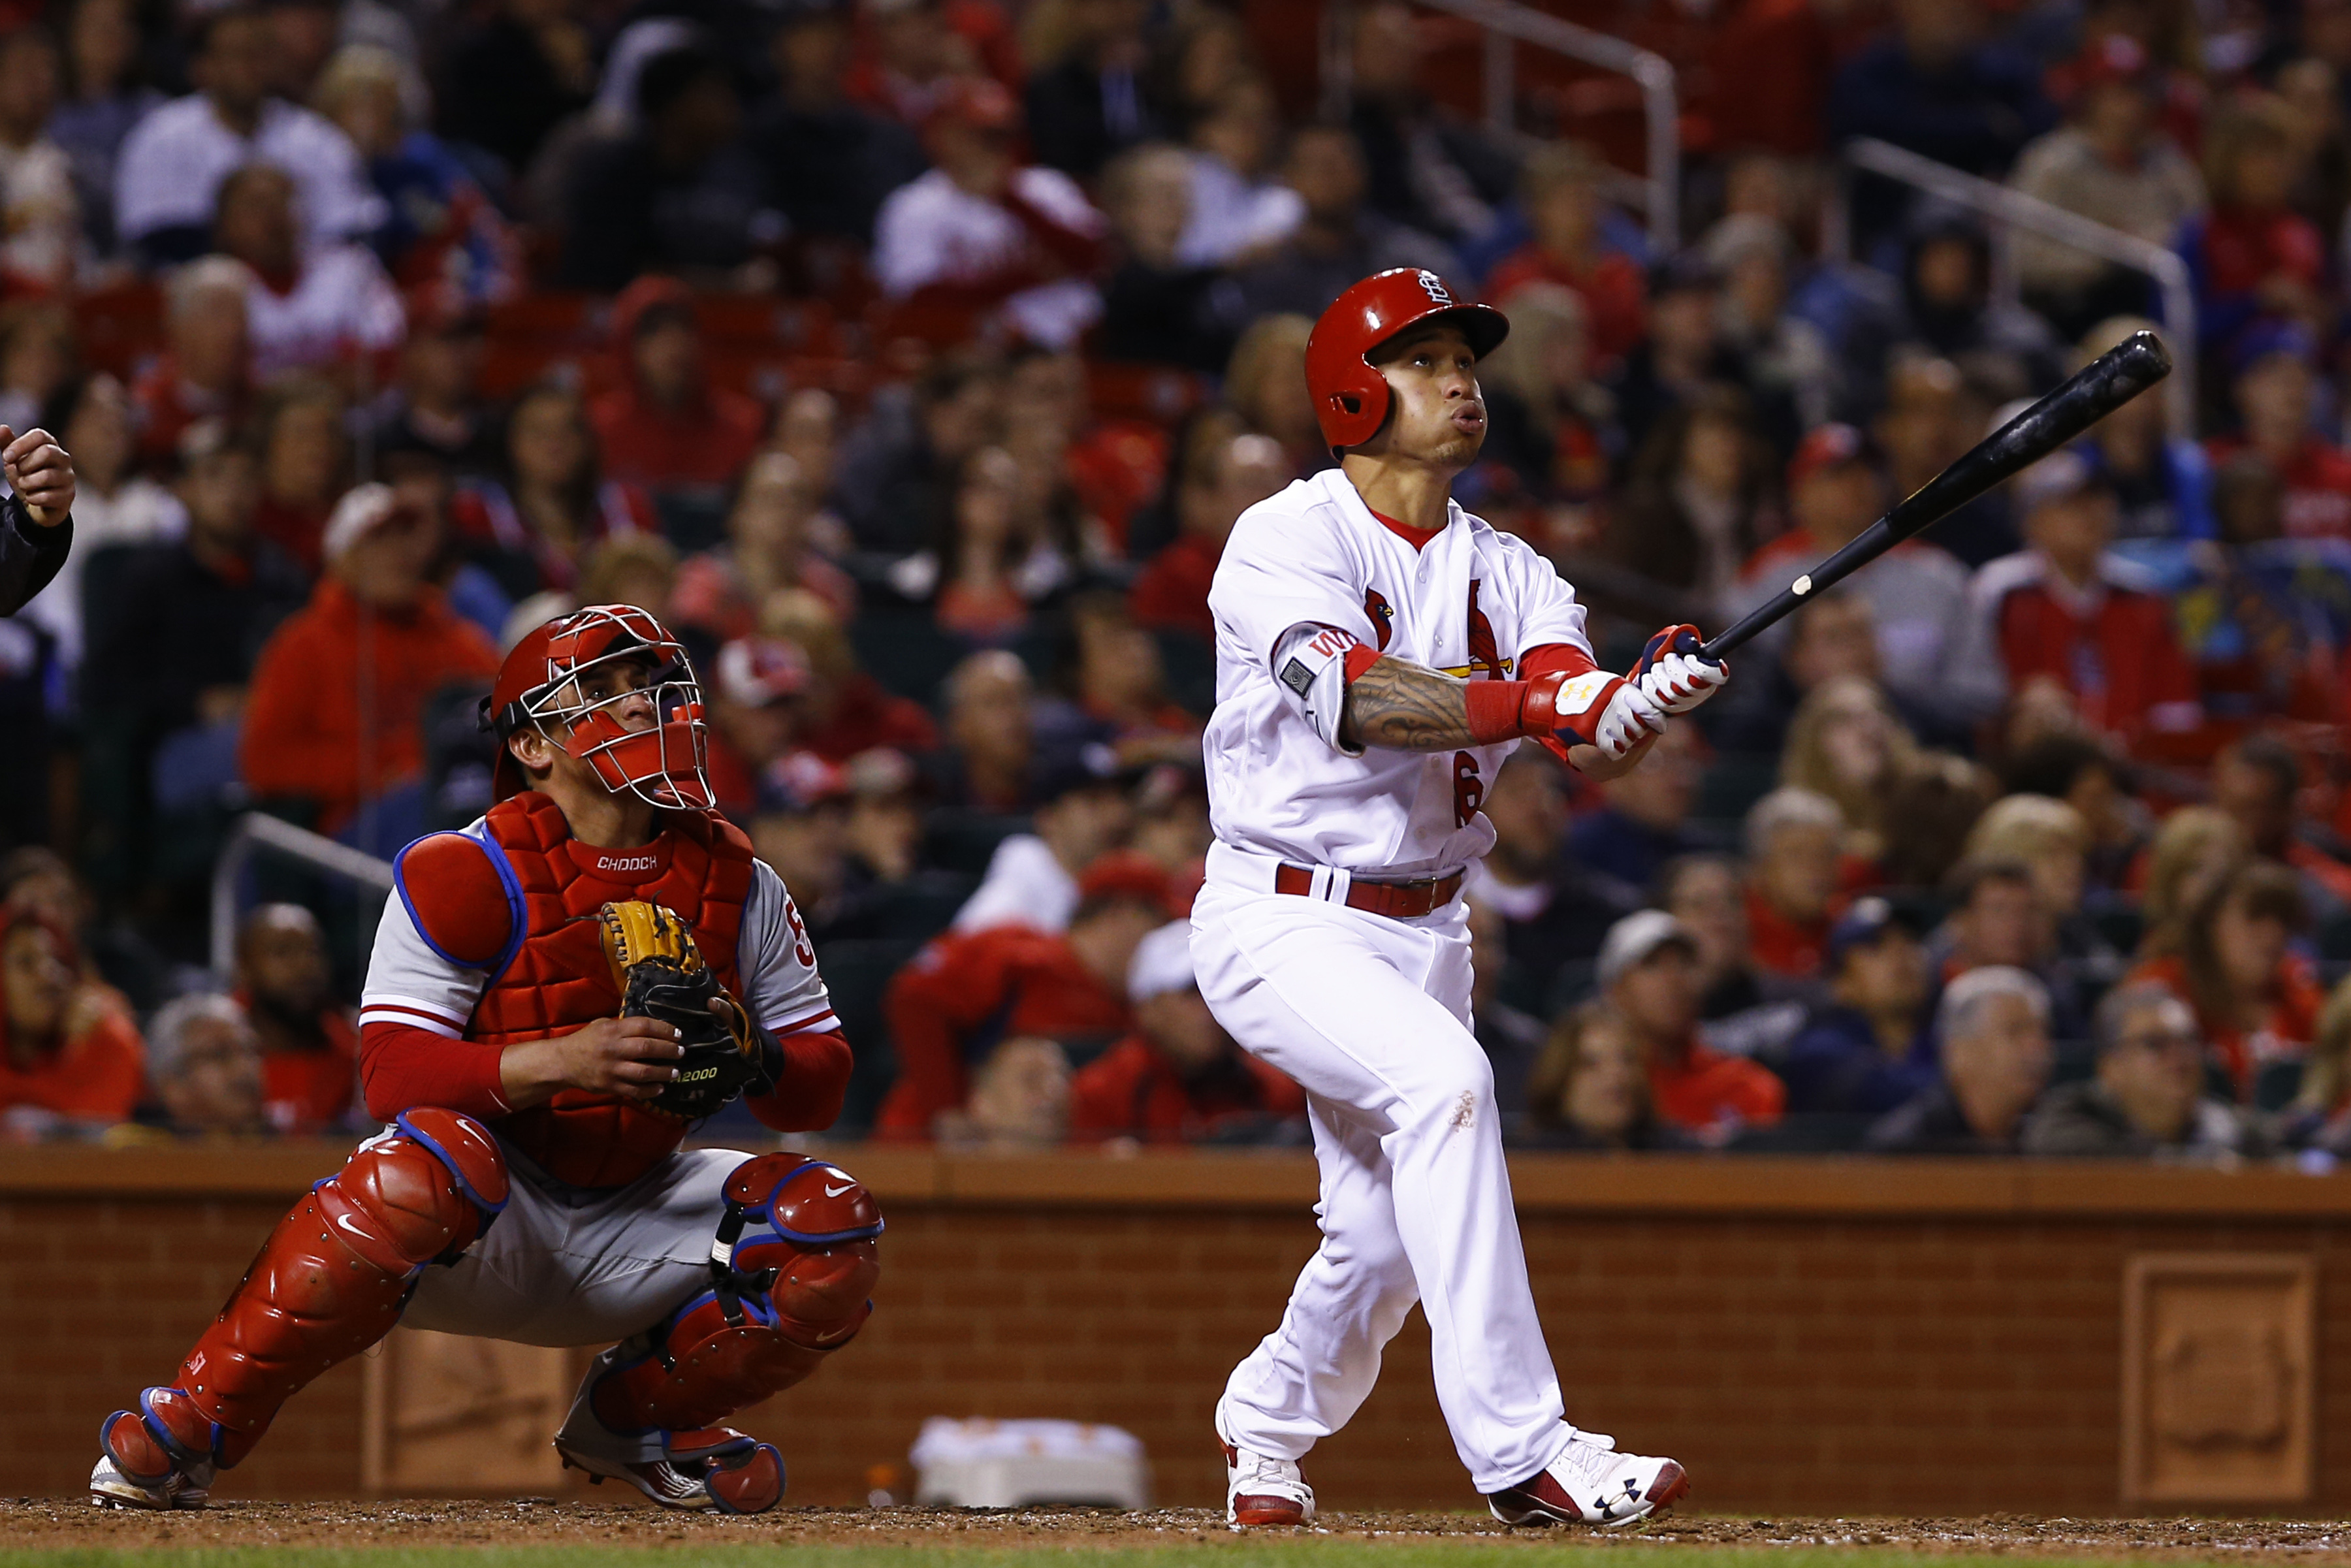 St. Louis Cardinals' Kolten Wong and Philadelphia Phillies catcher Carlos Ruiz watch Wongs home run during the seventh inning of a baseball game, Monday, May 2, 2016, in St. Louis. (AP Photo/Billy Hurst)